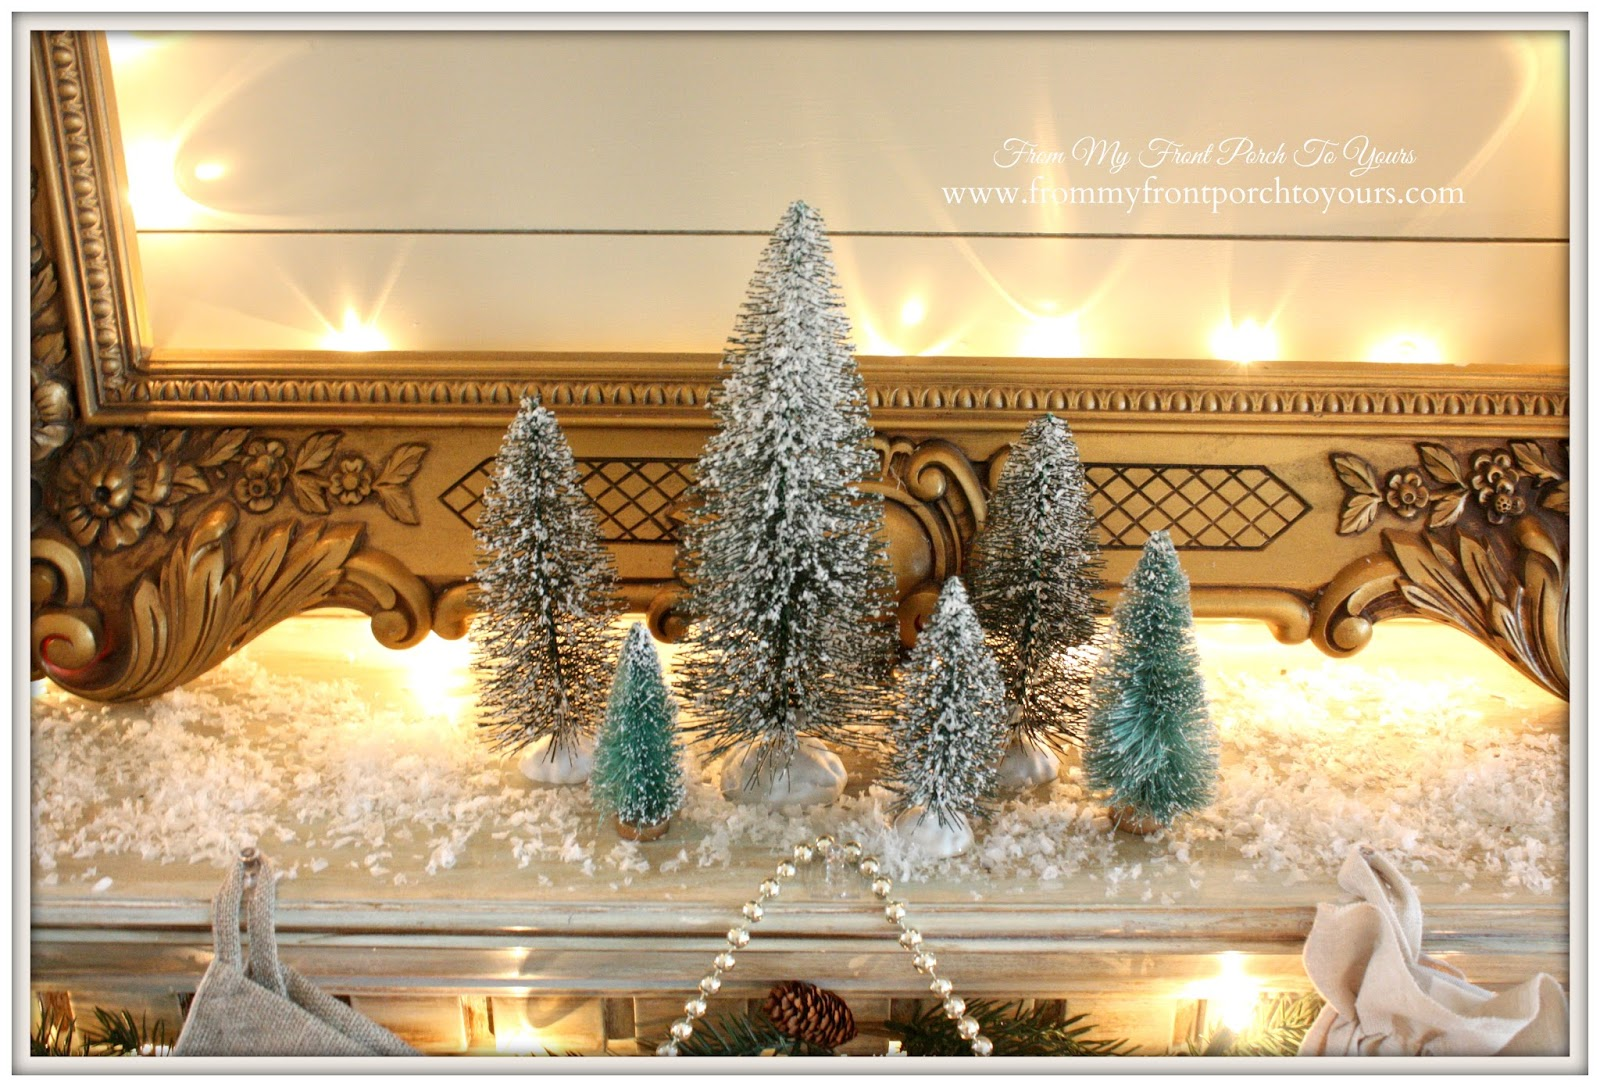 Bottle Brush Trees-Christmas Mantel 2014-French Farmhouse- From My Front Porch To Yours